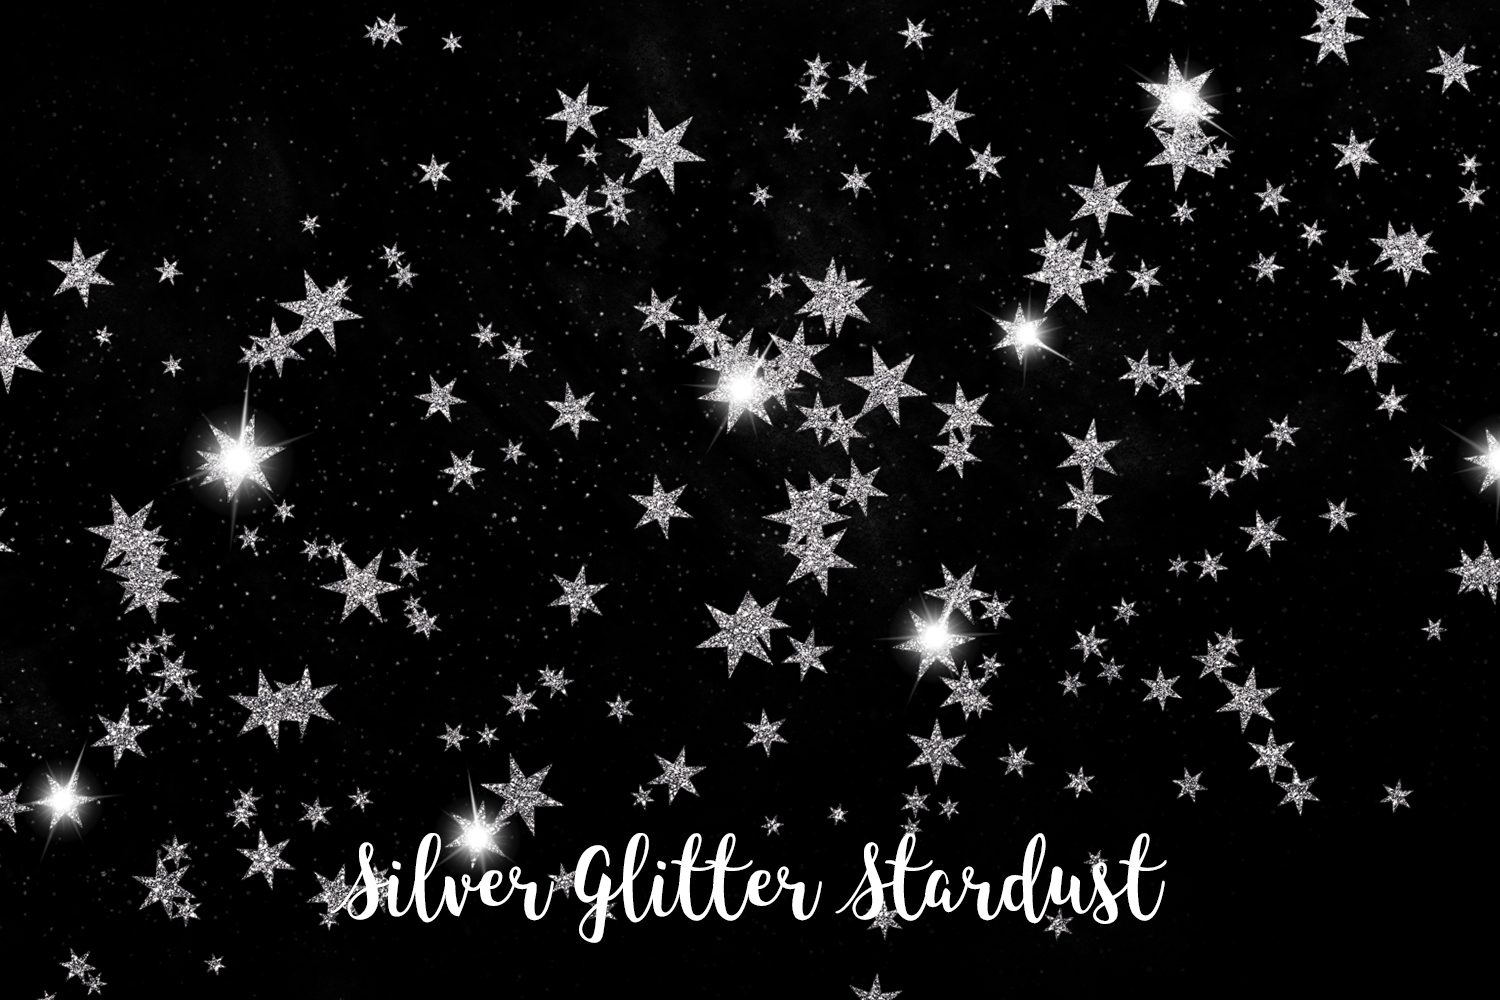 Silver Glitter Stardust, Transparent PNG example image 5